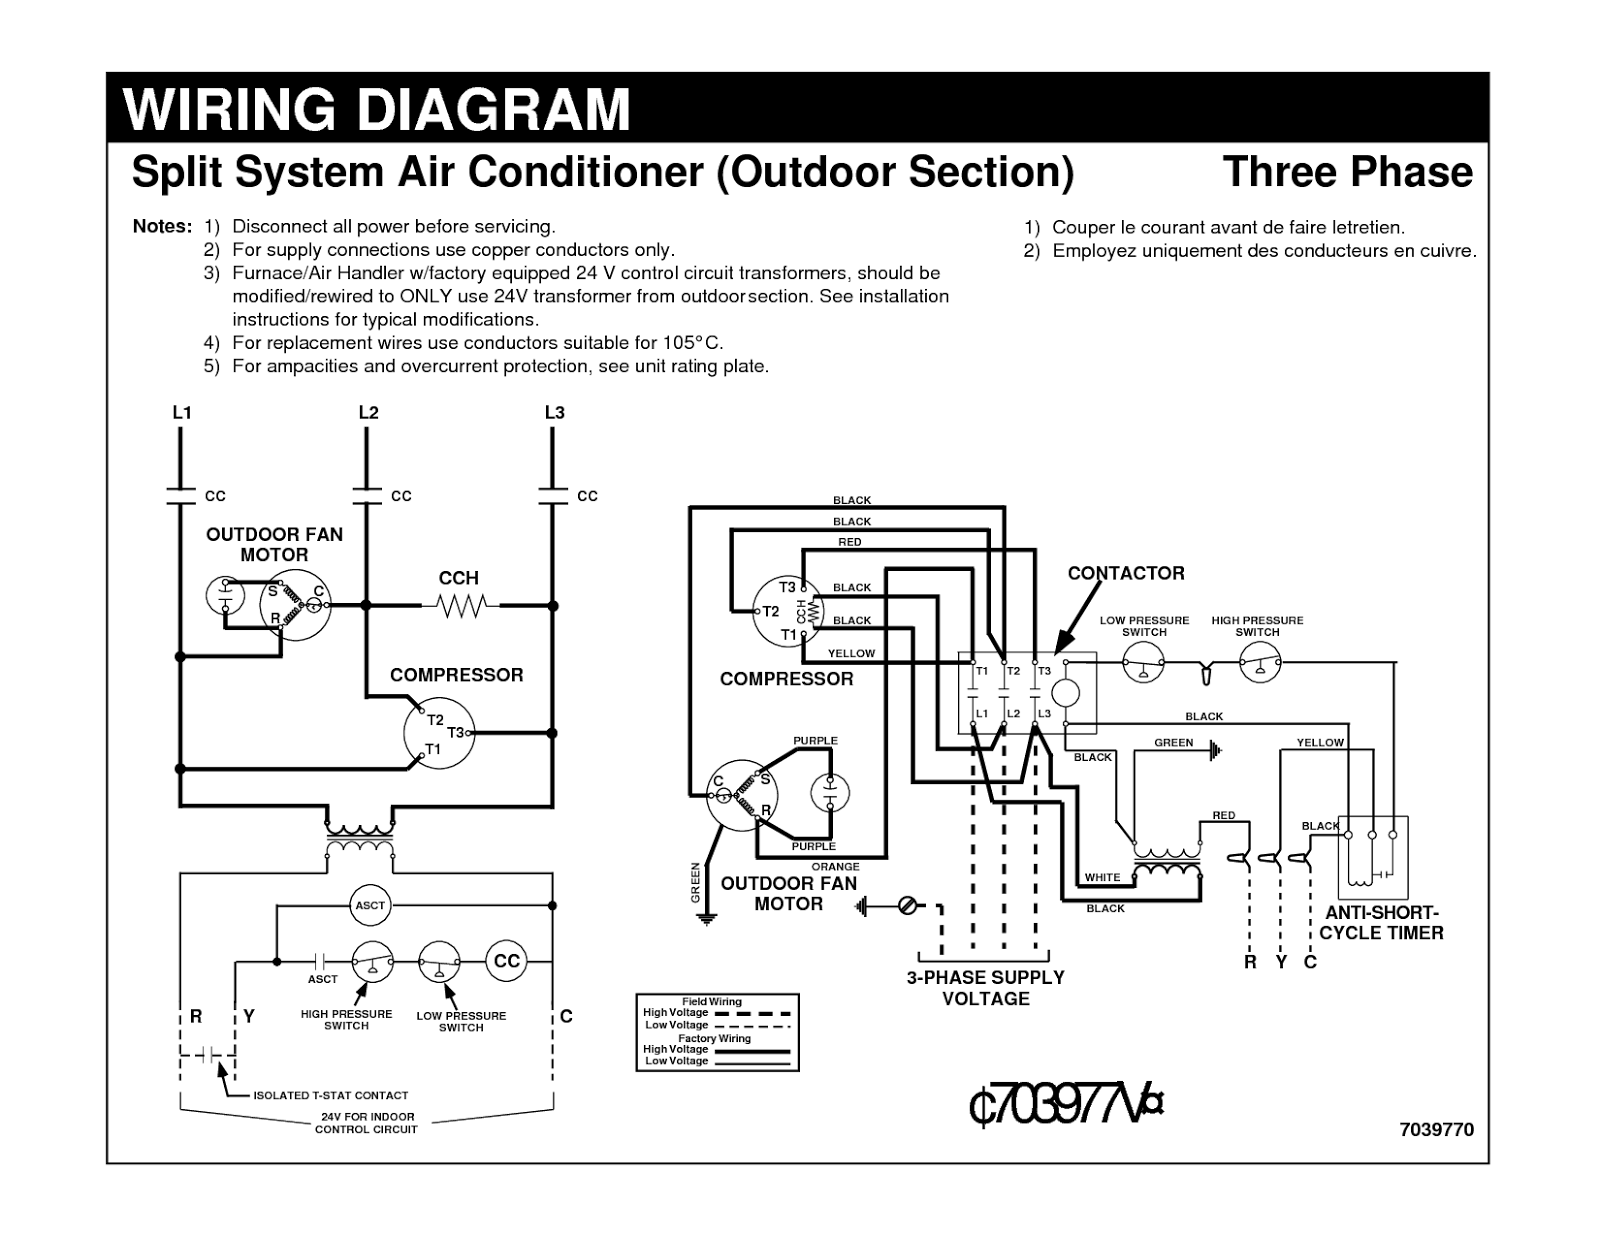 Air Handler Installation Diagrams Just Another Wiring Diagram Blog Lennox Conditioning Schematics Detailed Rh 9 2 Gastspiel Gerhartz De